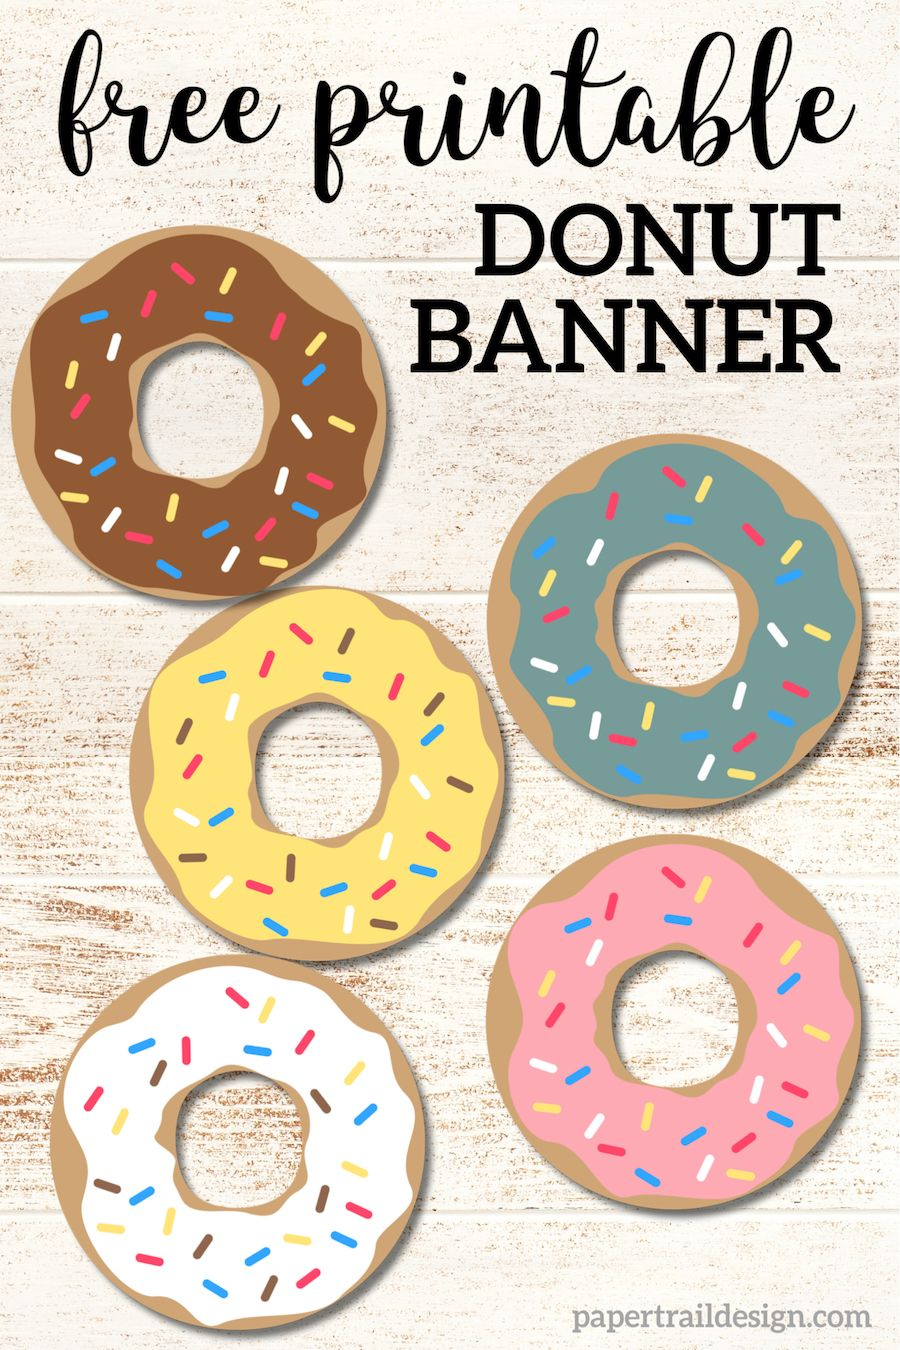 Free Printable Donut Banner Party Decor – Paper Trail Design